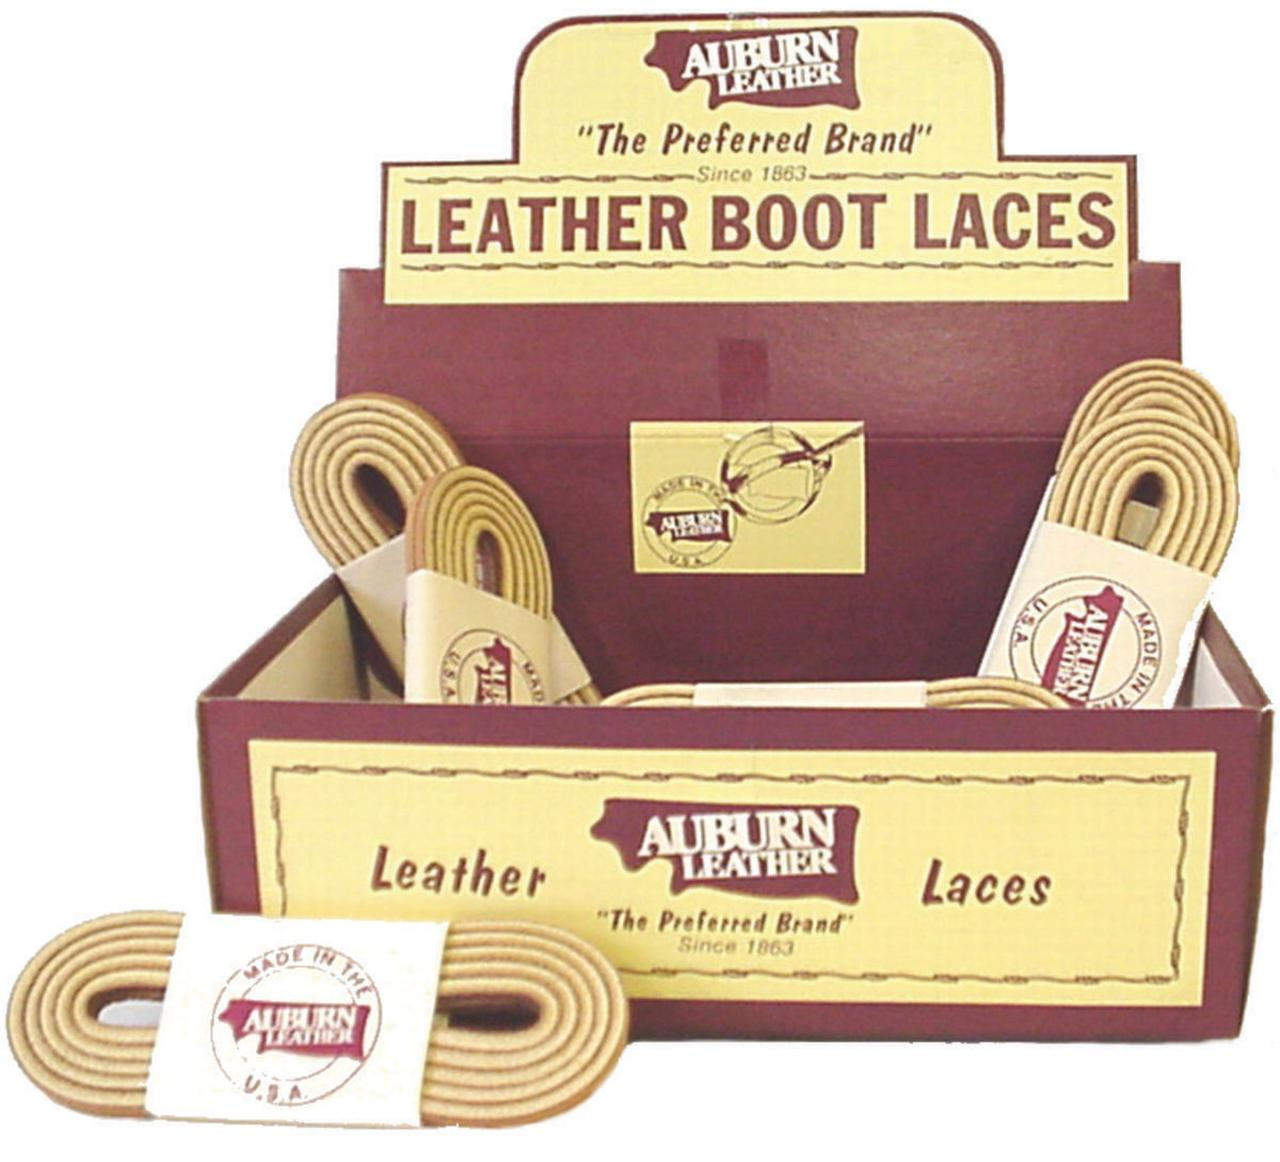 Auburn Leather 250 Sleeved Boot Lace, 72 in L, Leather, Indian Tan